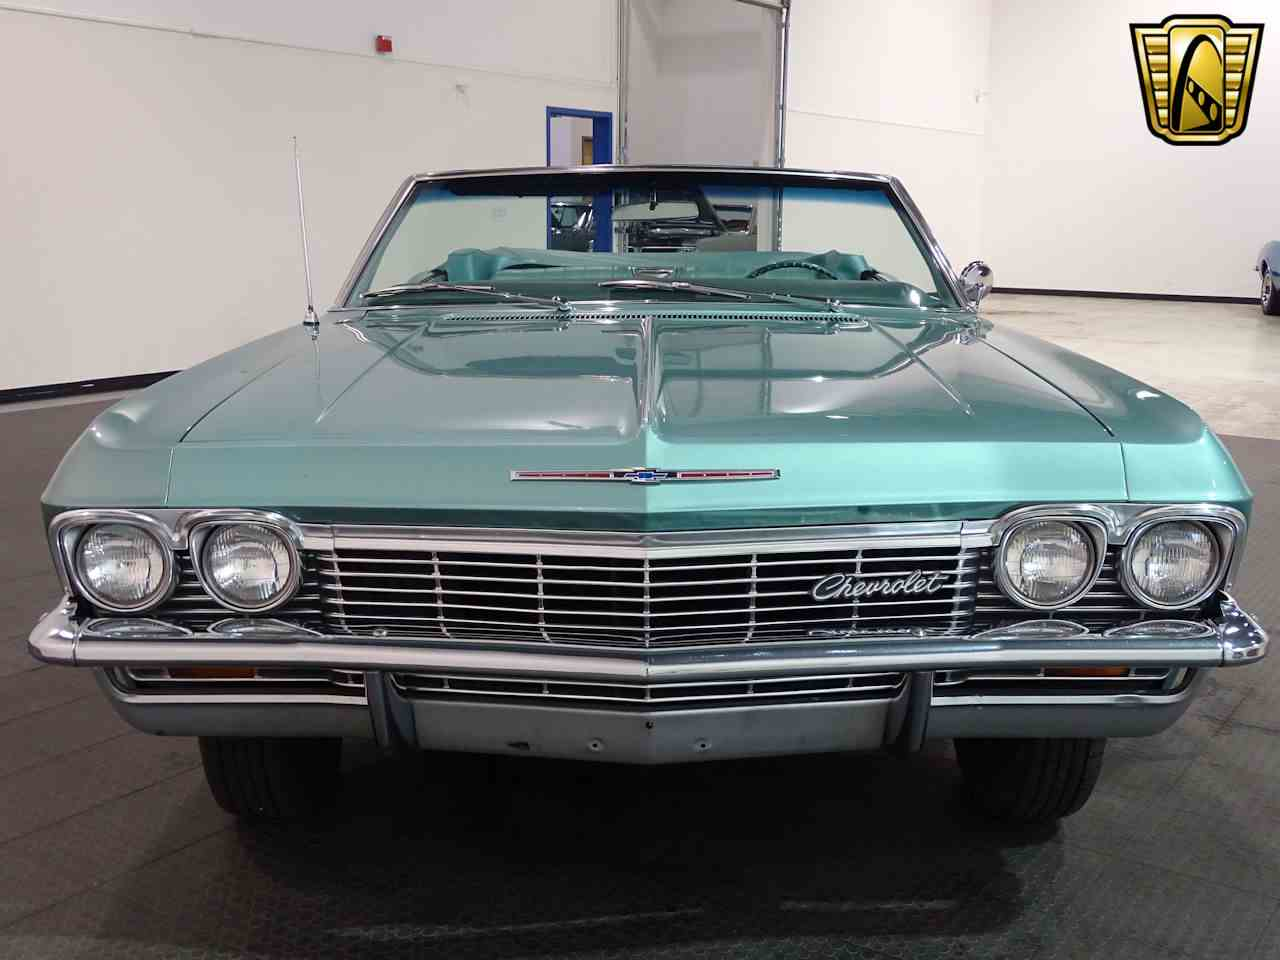 Large Picture of Classic '65 Impala located in Indiana - $34,995.00 Offered by Gateway Classic Cars - Indianapolis - L5YV